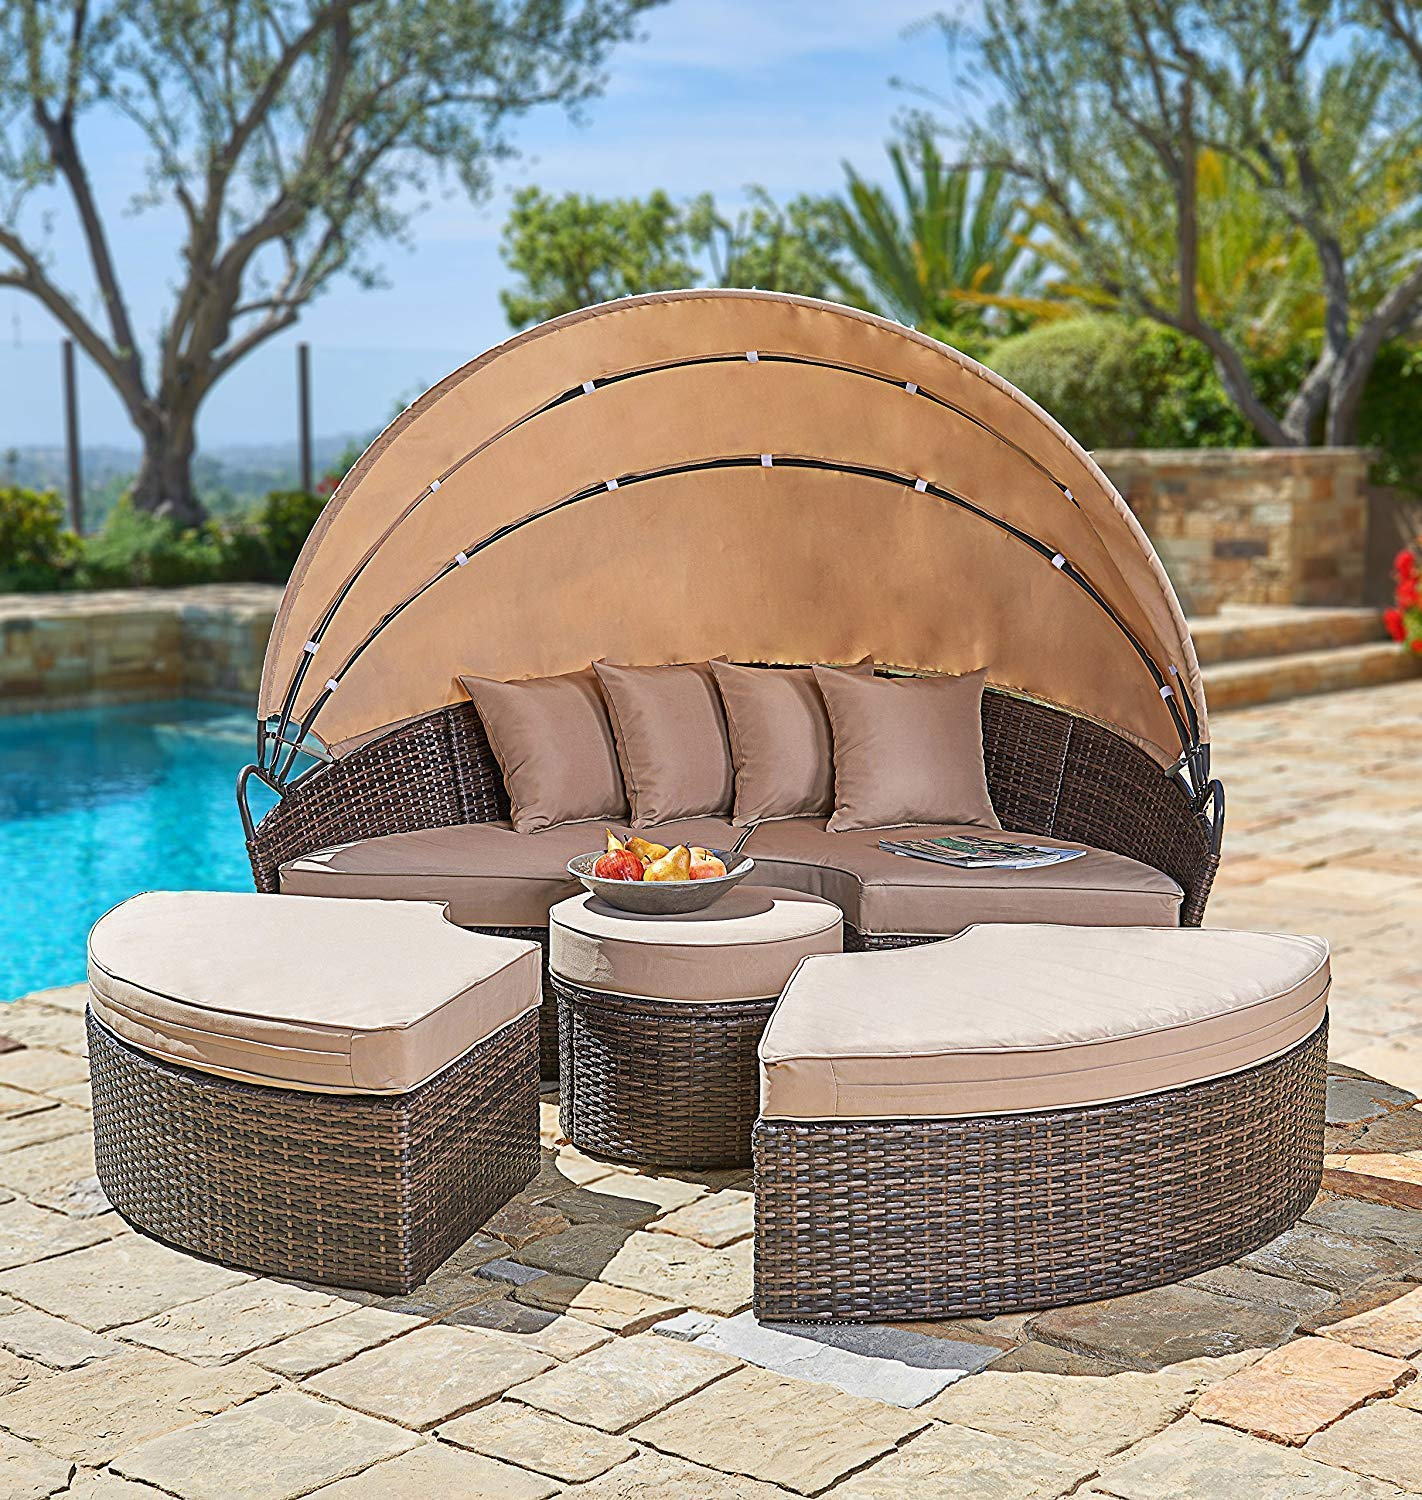 Outdoor Daybeds - Walmart.com on Belham Living Brighton Outdoor Daybed  id=78091